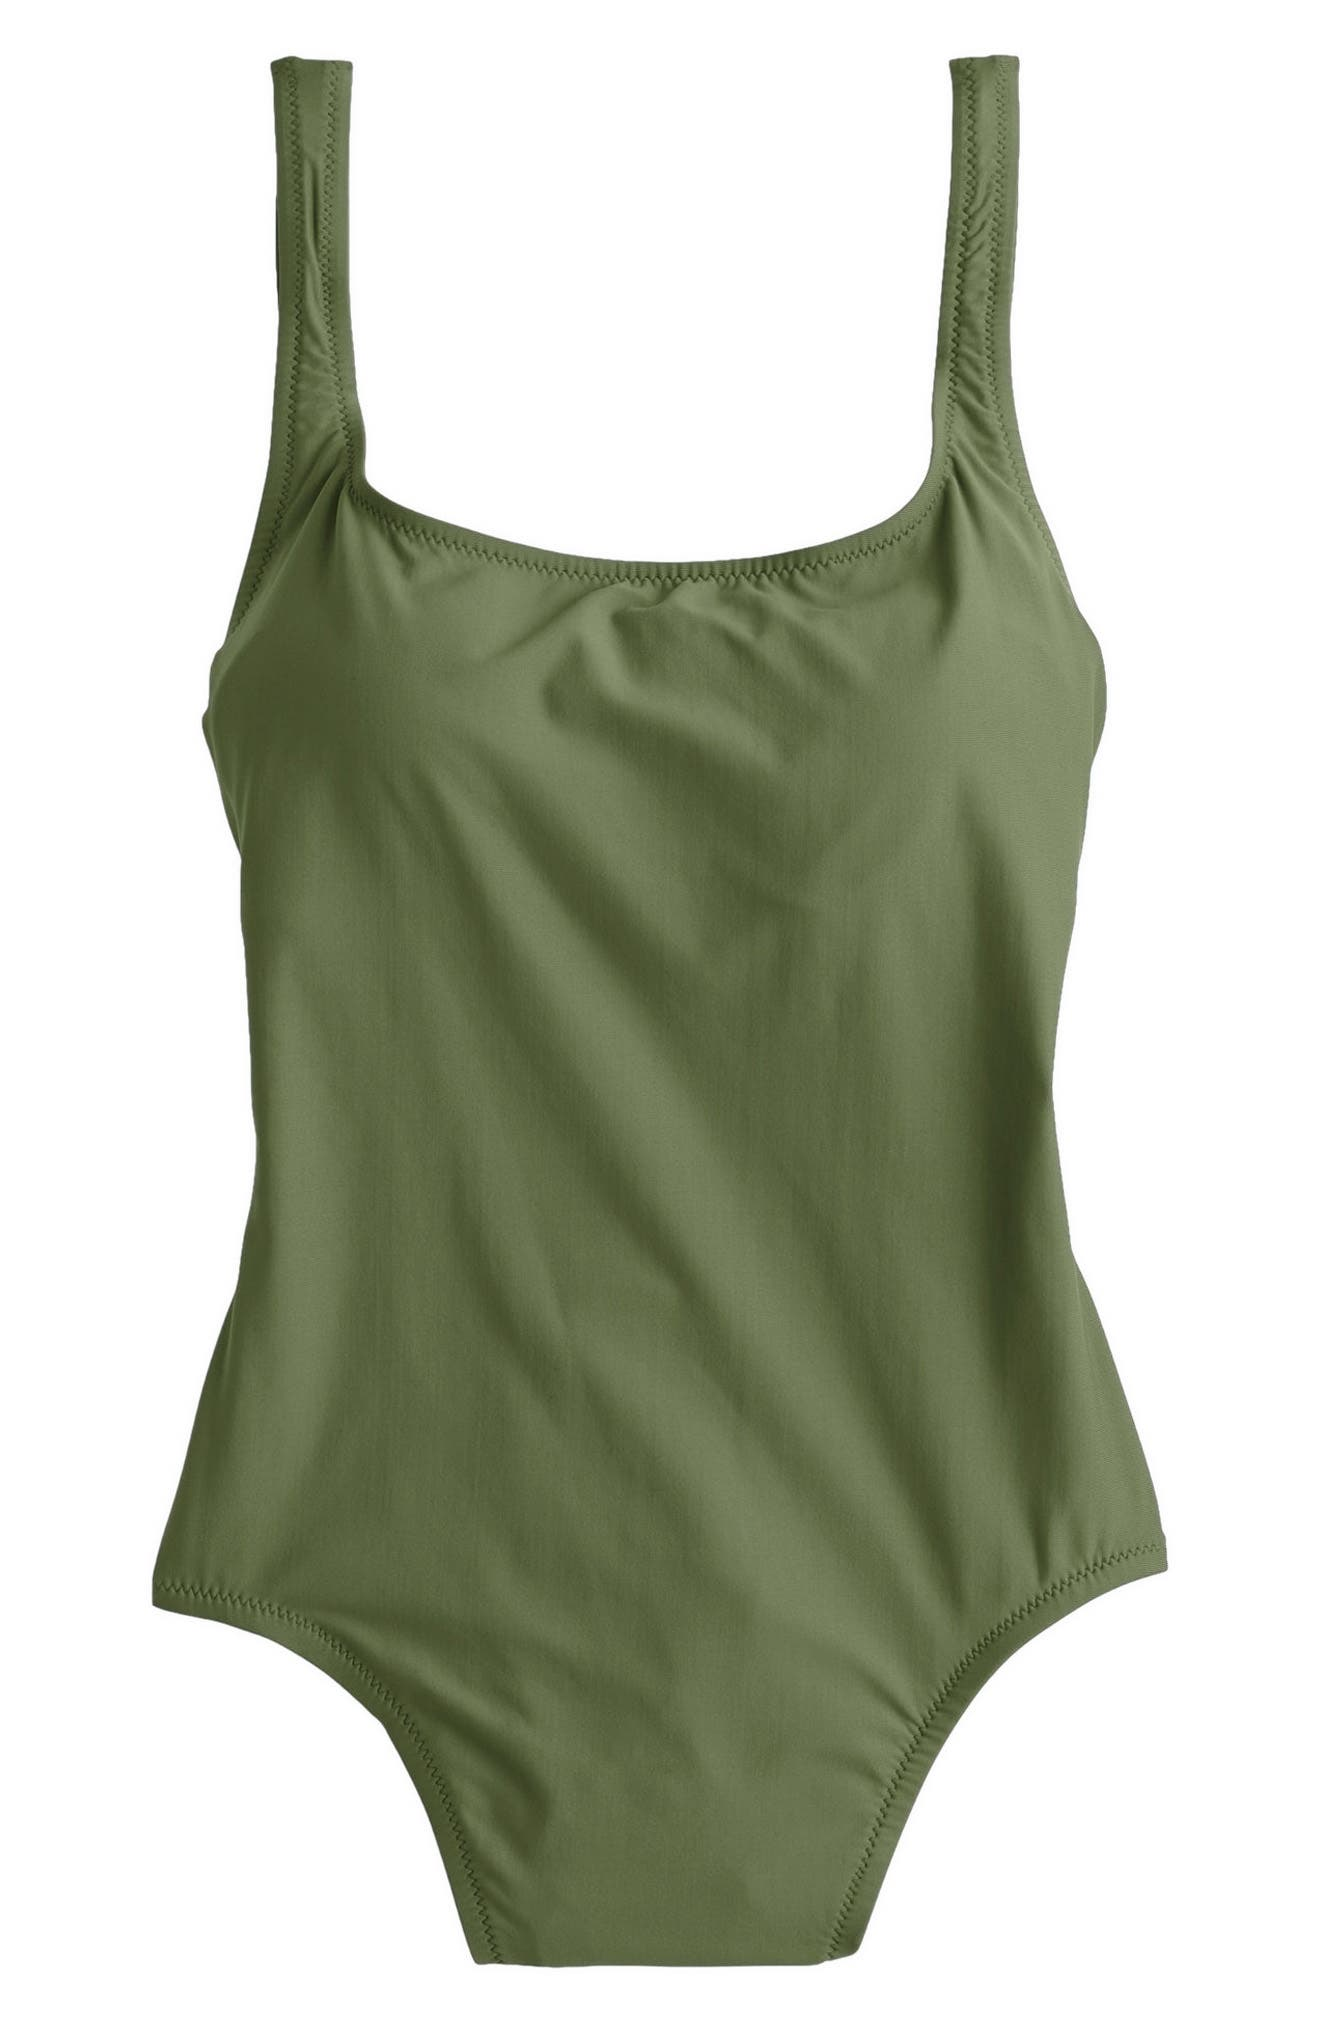 Tactel<sup>®</sup> Nylon One-Piece Swimsuit,                         Main,                         color, 300